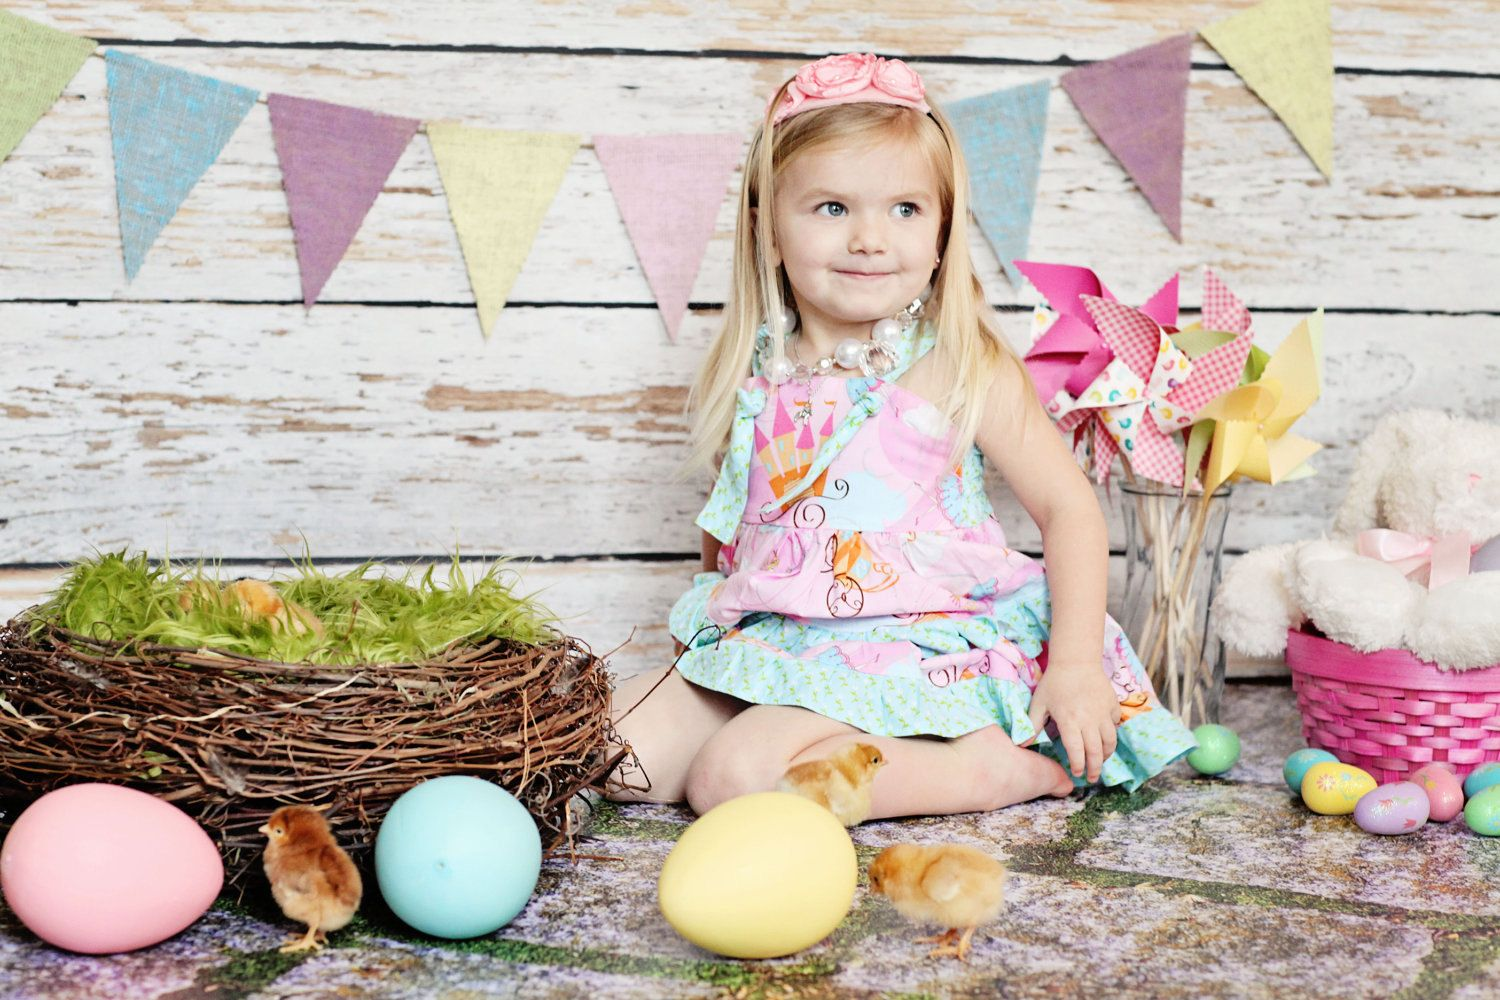 1000+ images about Easter Hunny!! on Pinterest   Pastel colors ...